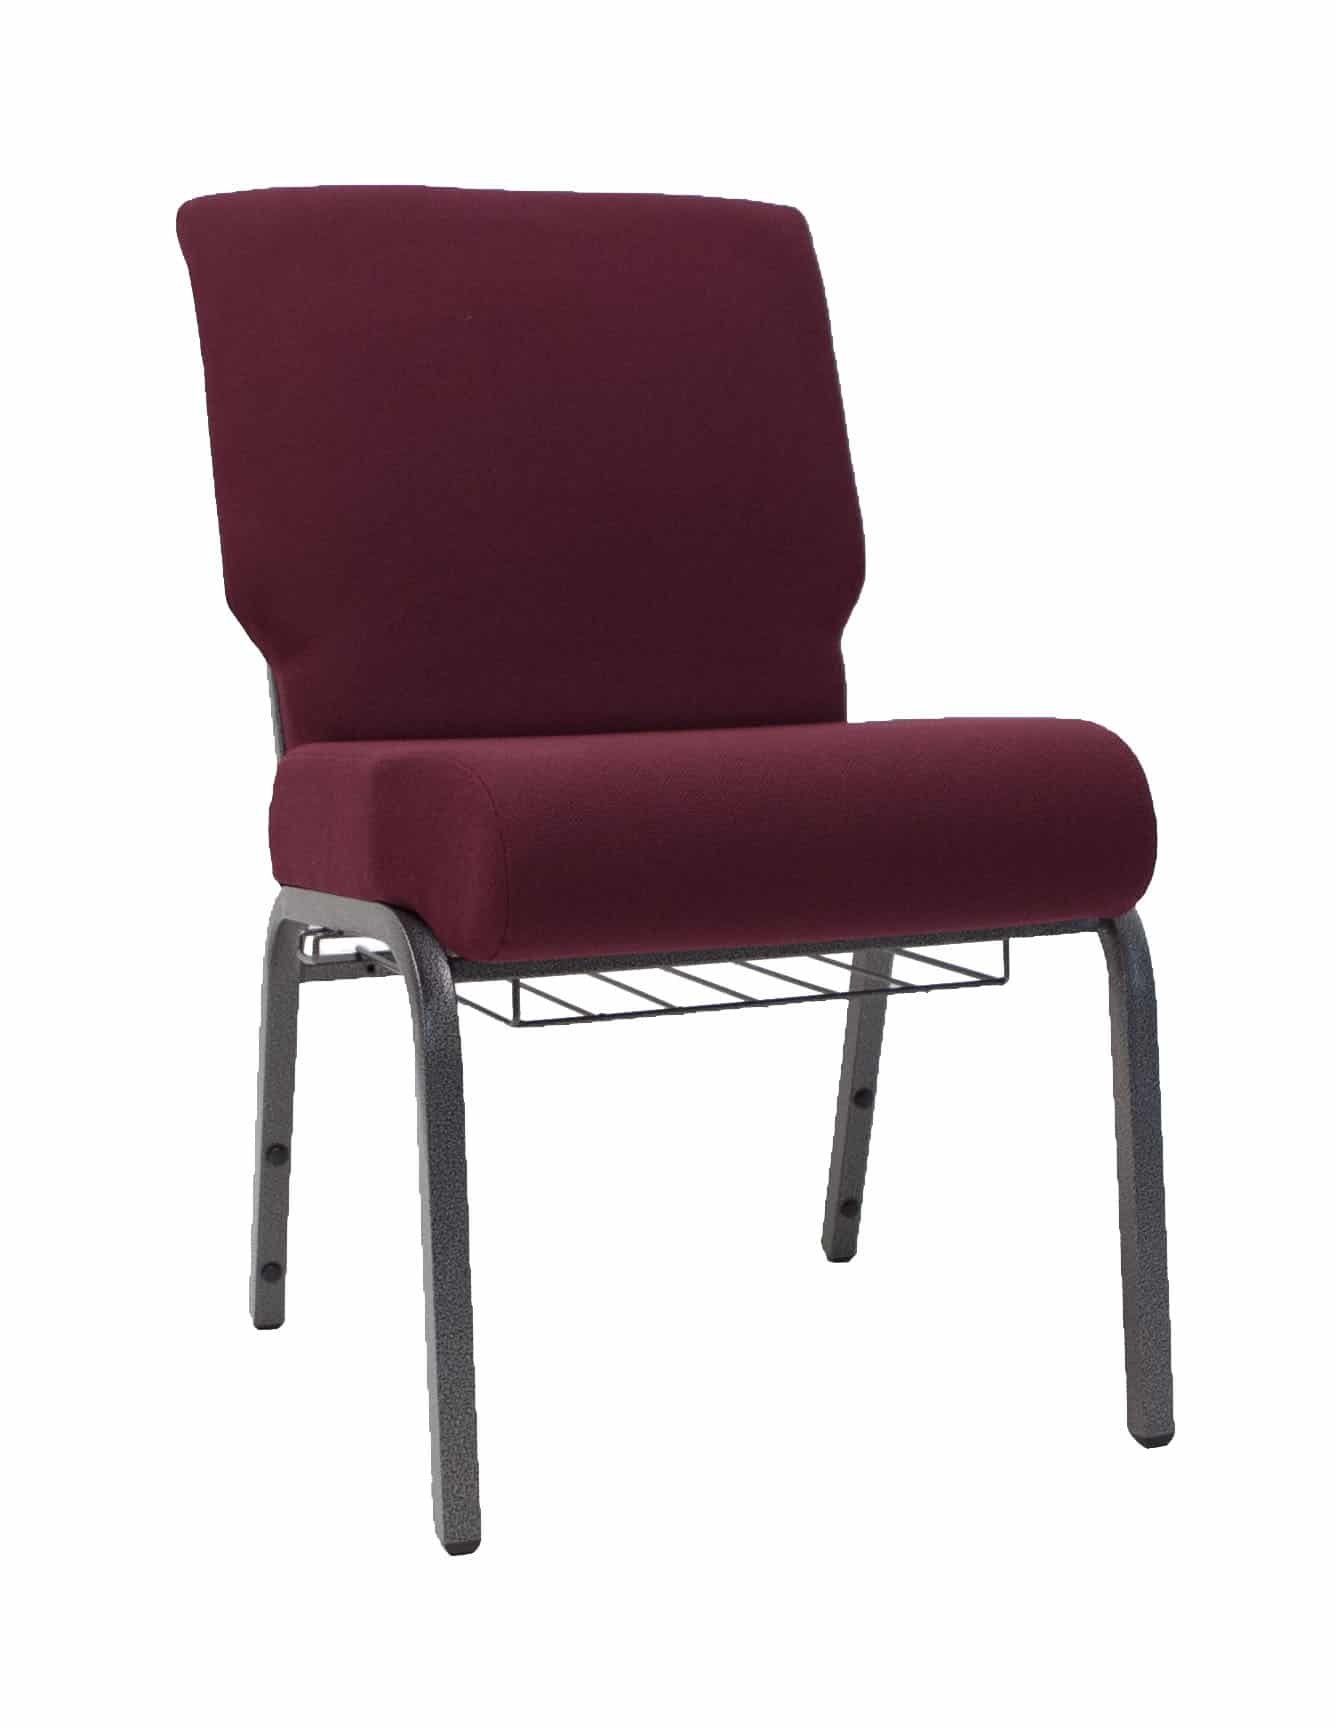 cathedral chairs mid century dining room am cc maroon 20 inch padded church chair the furniture